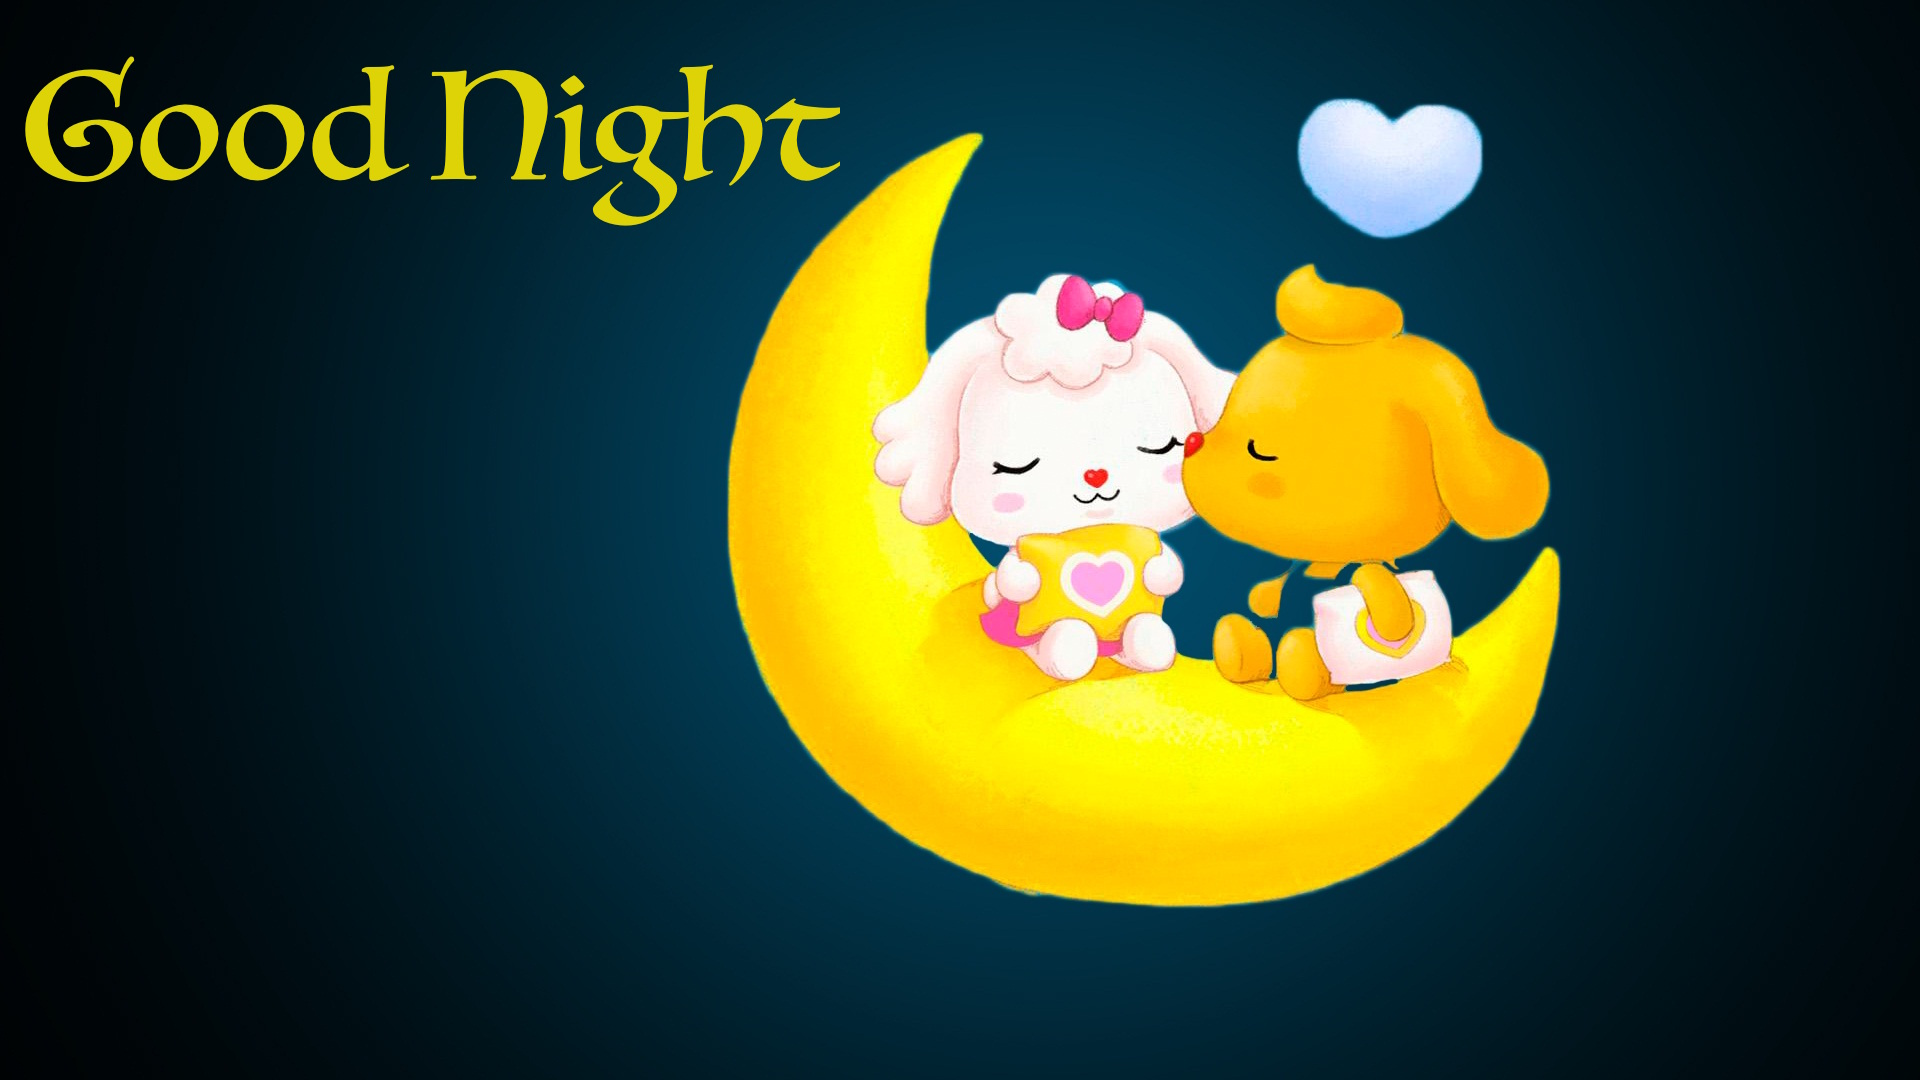 good night cartoon kiss moon image